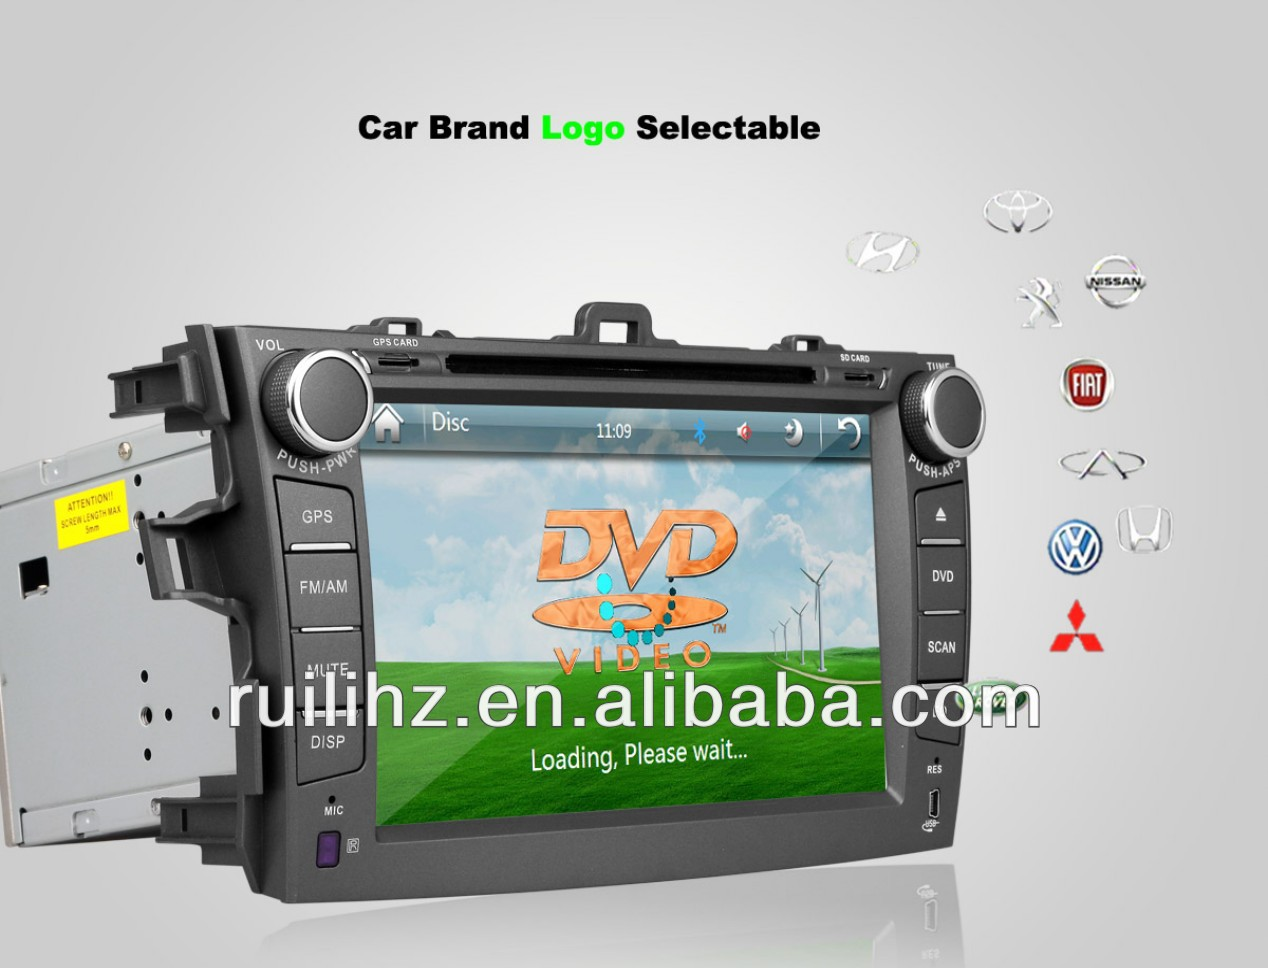 Toyota Collora 8 inchCar DVD Touch Screen GPS/3G/Wifi